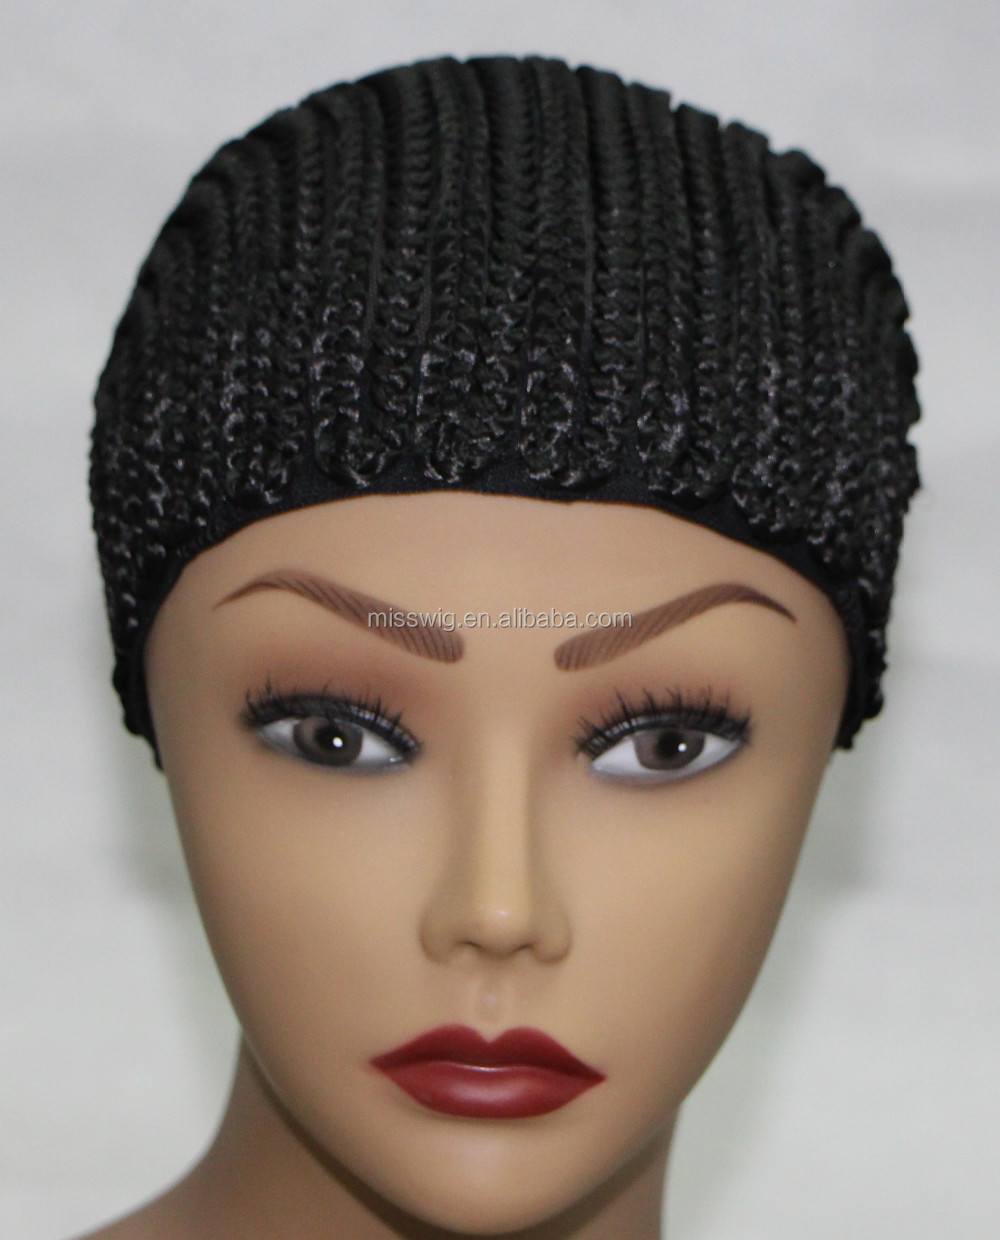 Crochet Braids On A Wig Cap : 16-m Braid Caps For Crochet Braids Express Cornrow Cap For Black ...